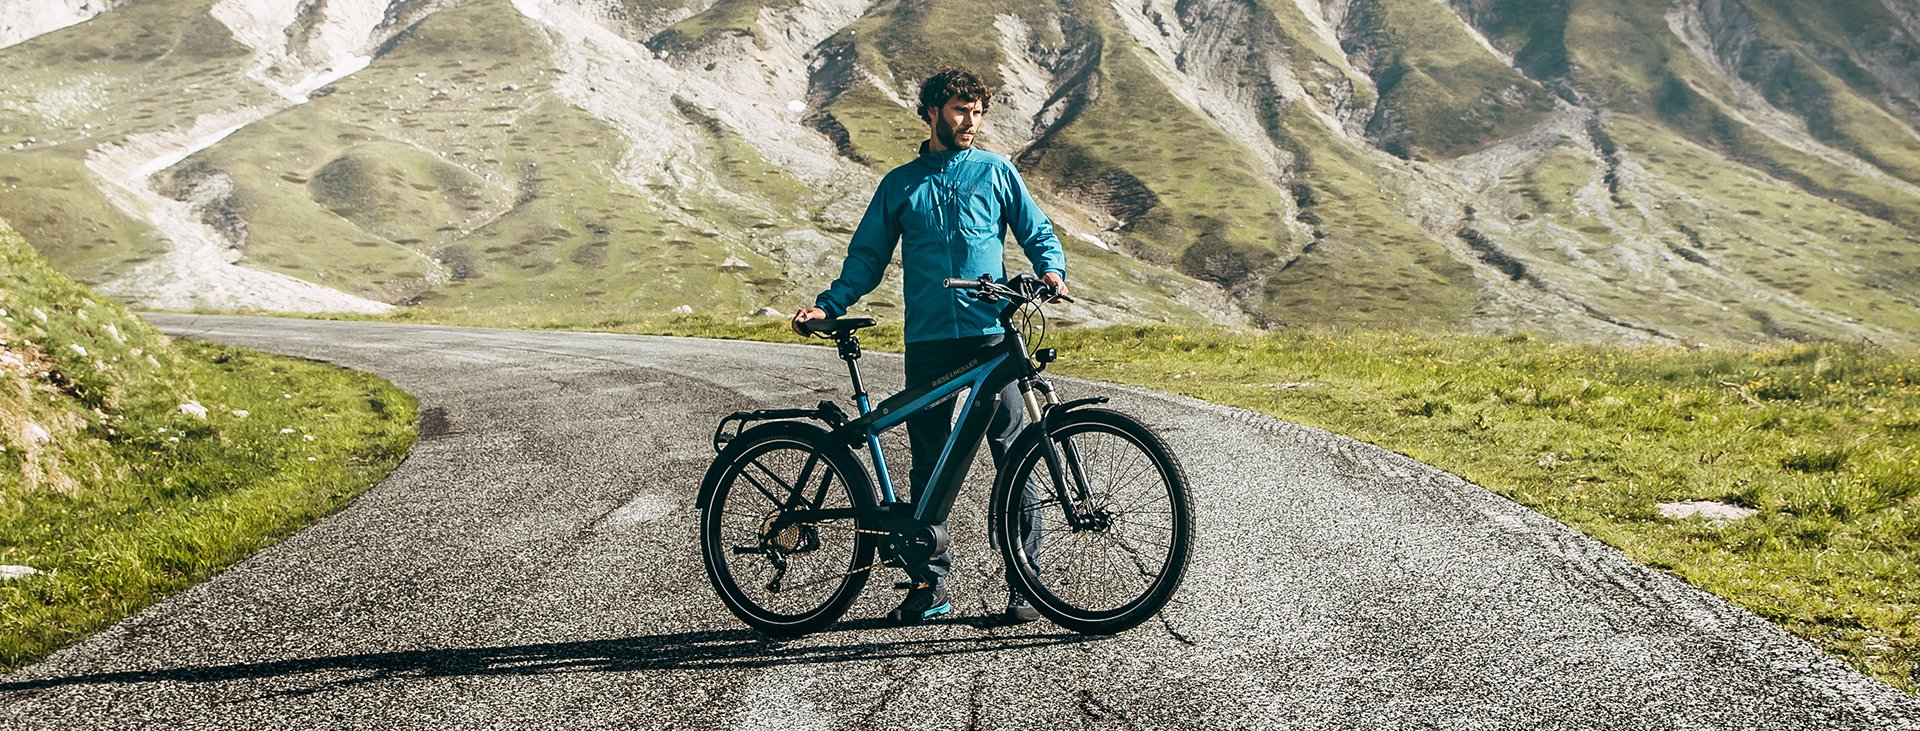 Supercharger GX Rohloff: the long distance runner of Riese und Müller